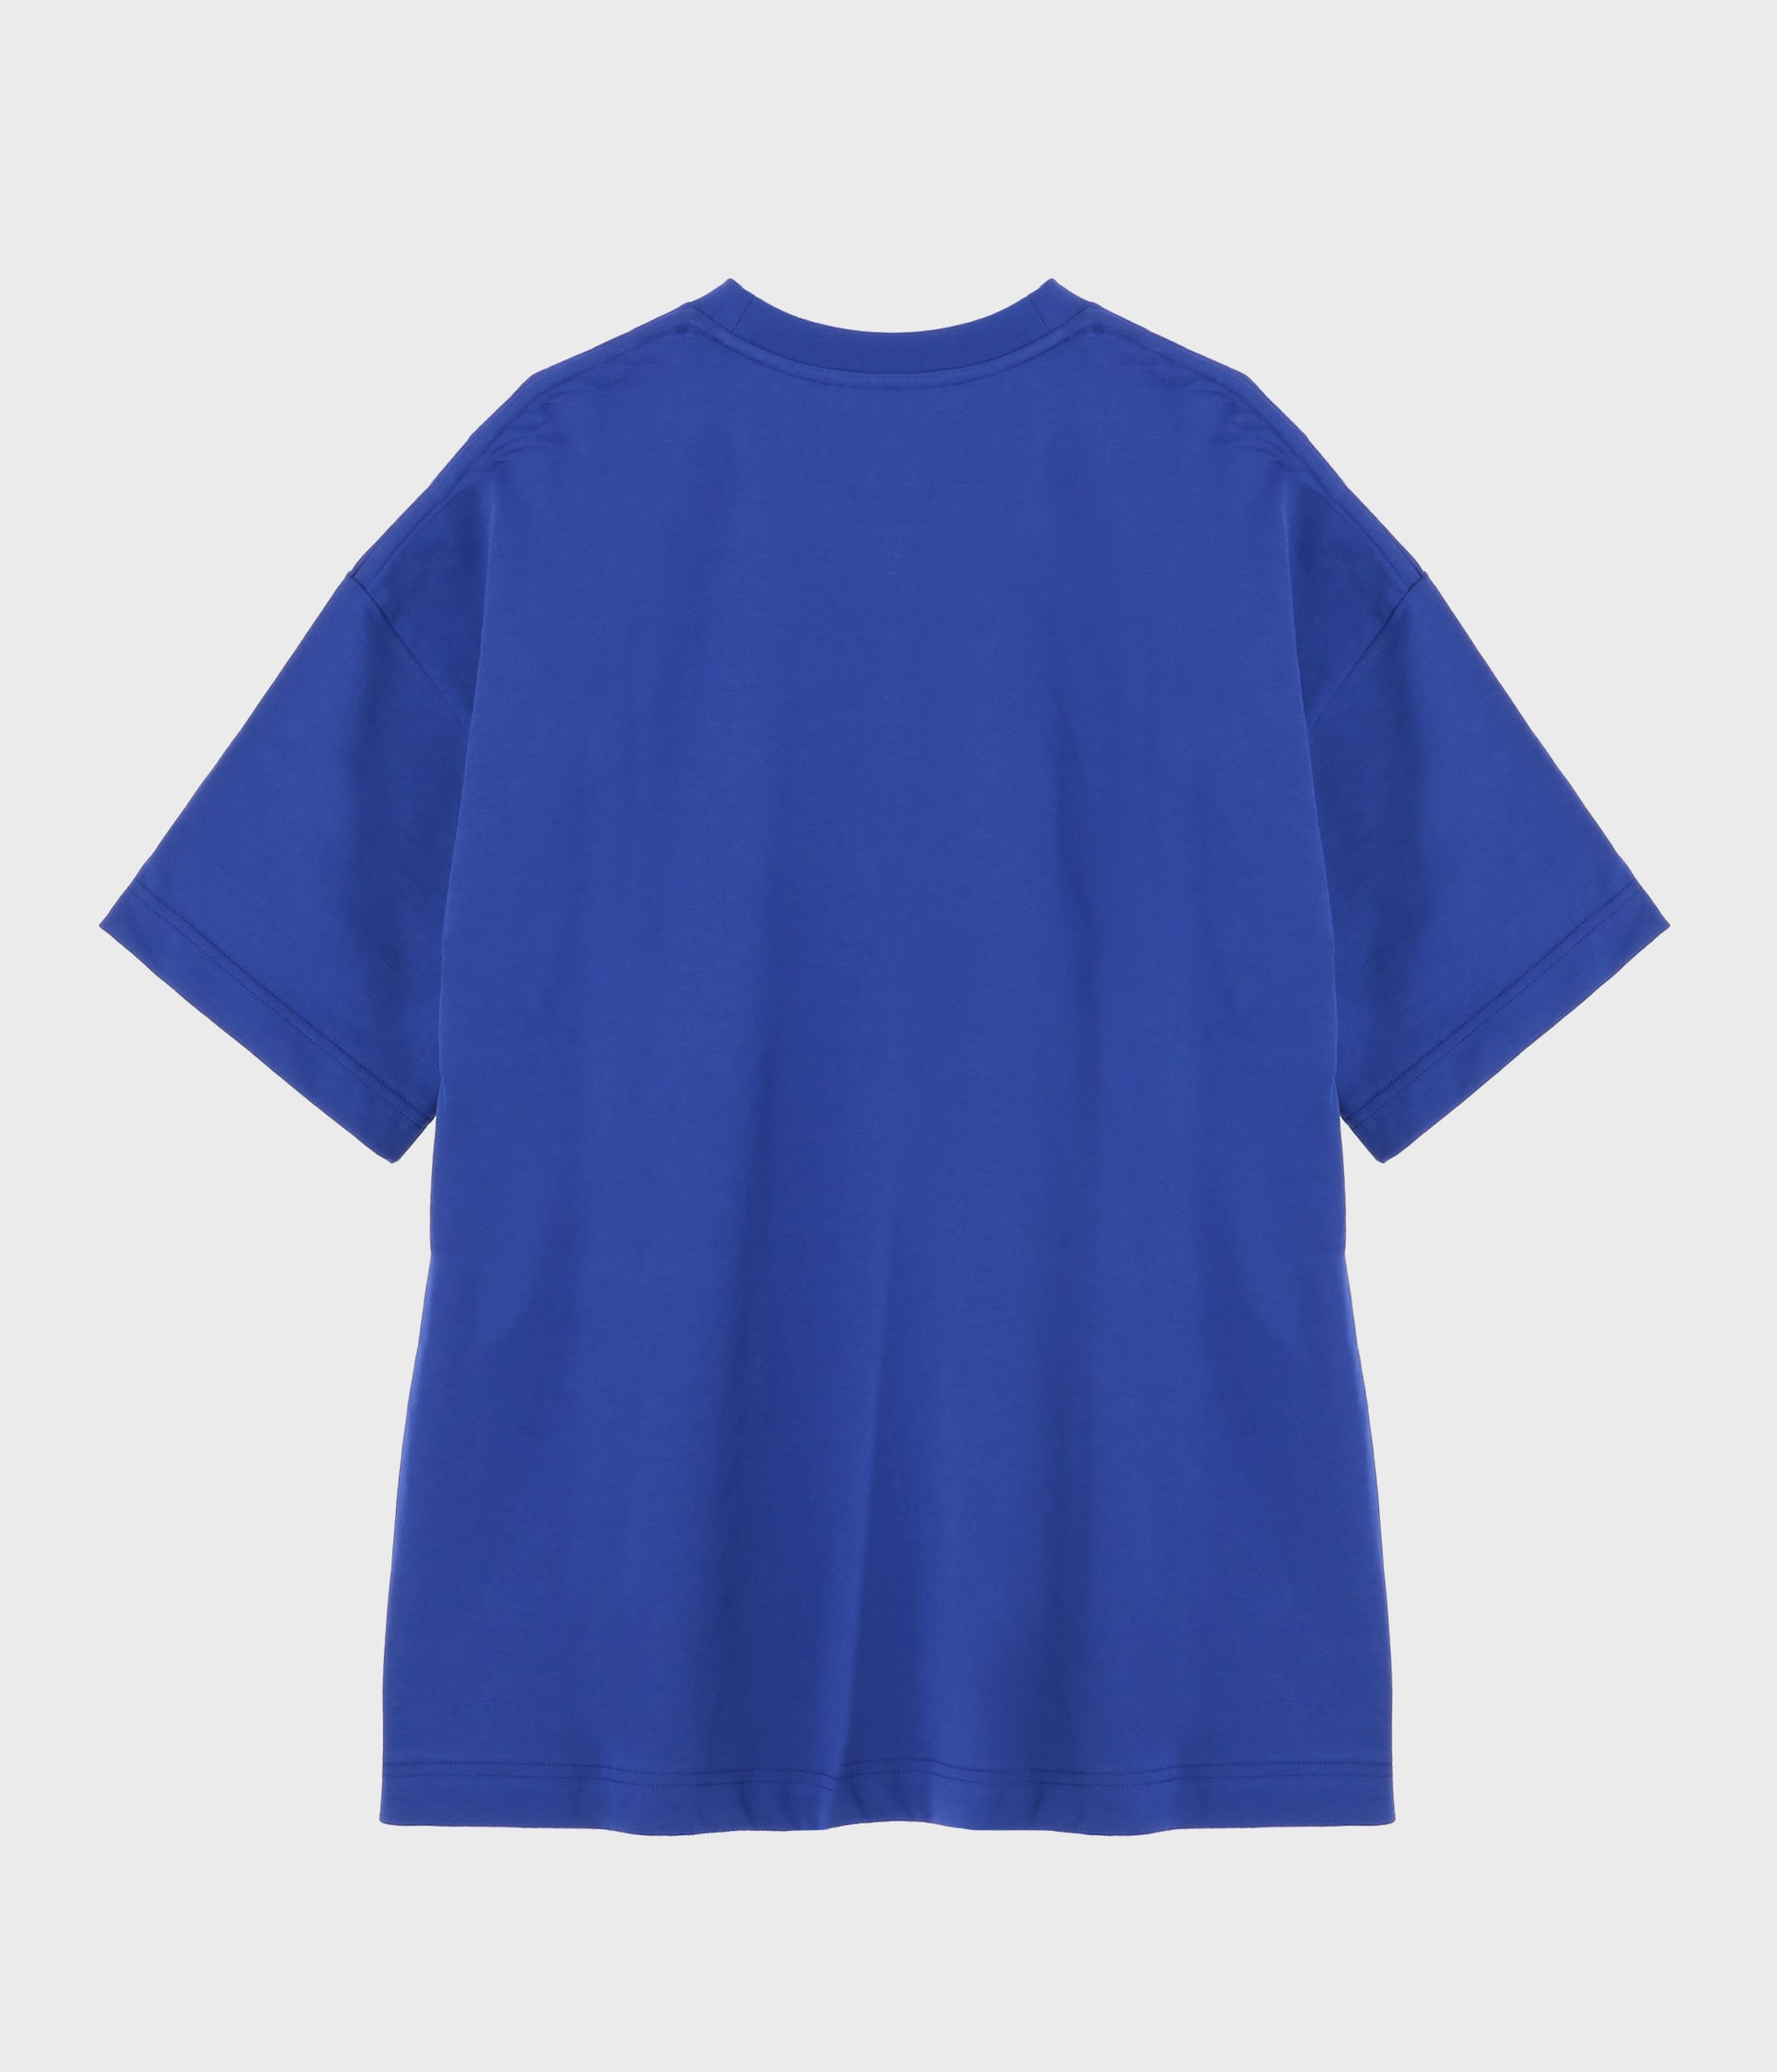 OVERSIZED T-SHIRT 詳細画像 ELECTRIC BLUE 2